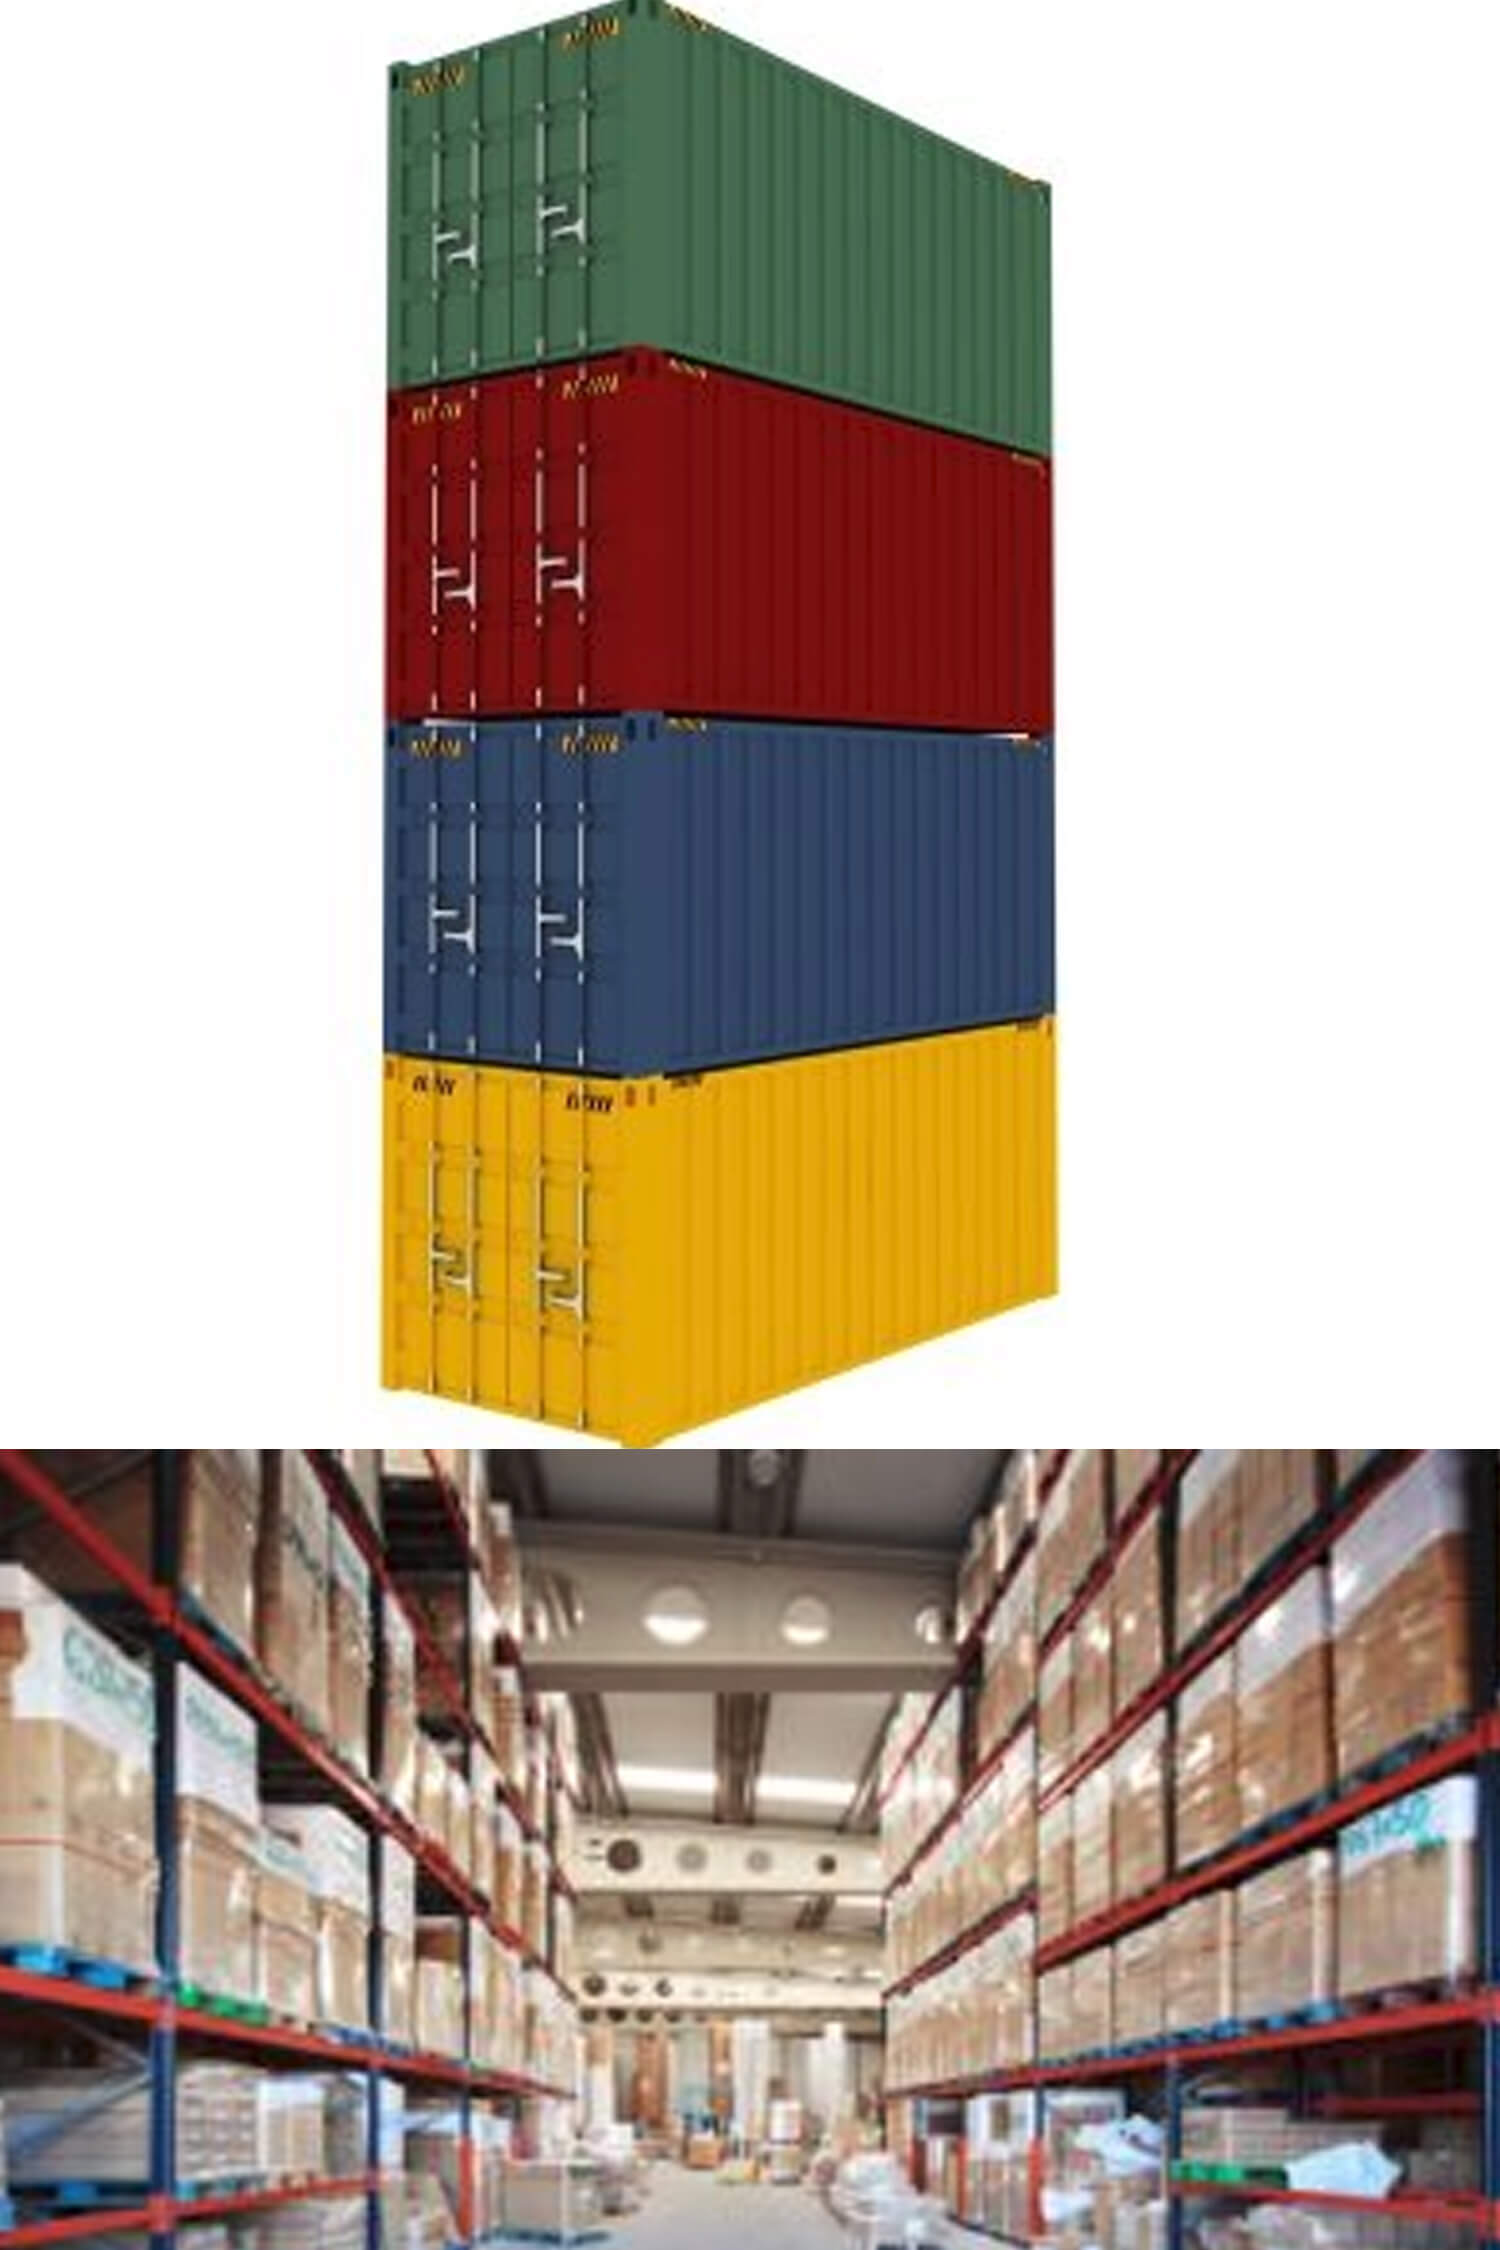 Containers And Storage Facilities